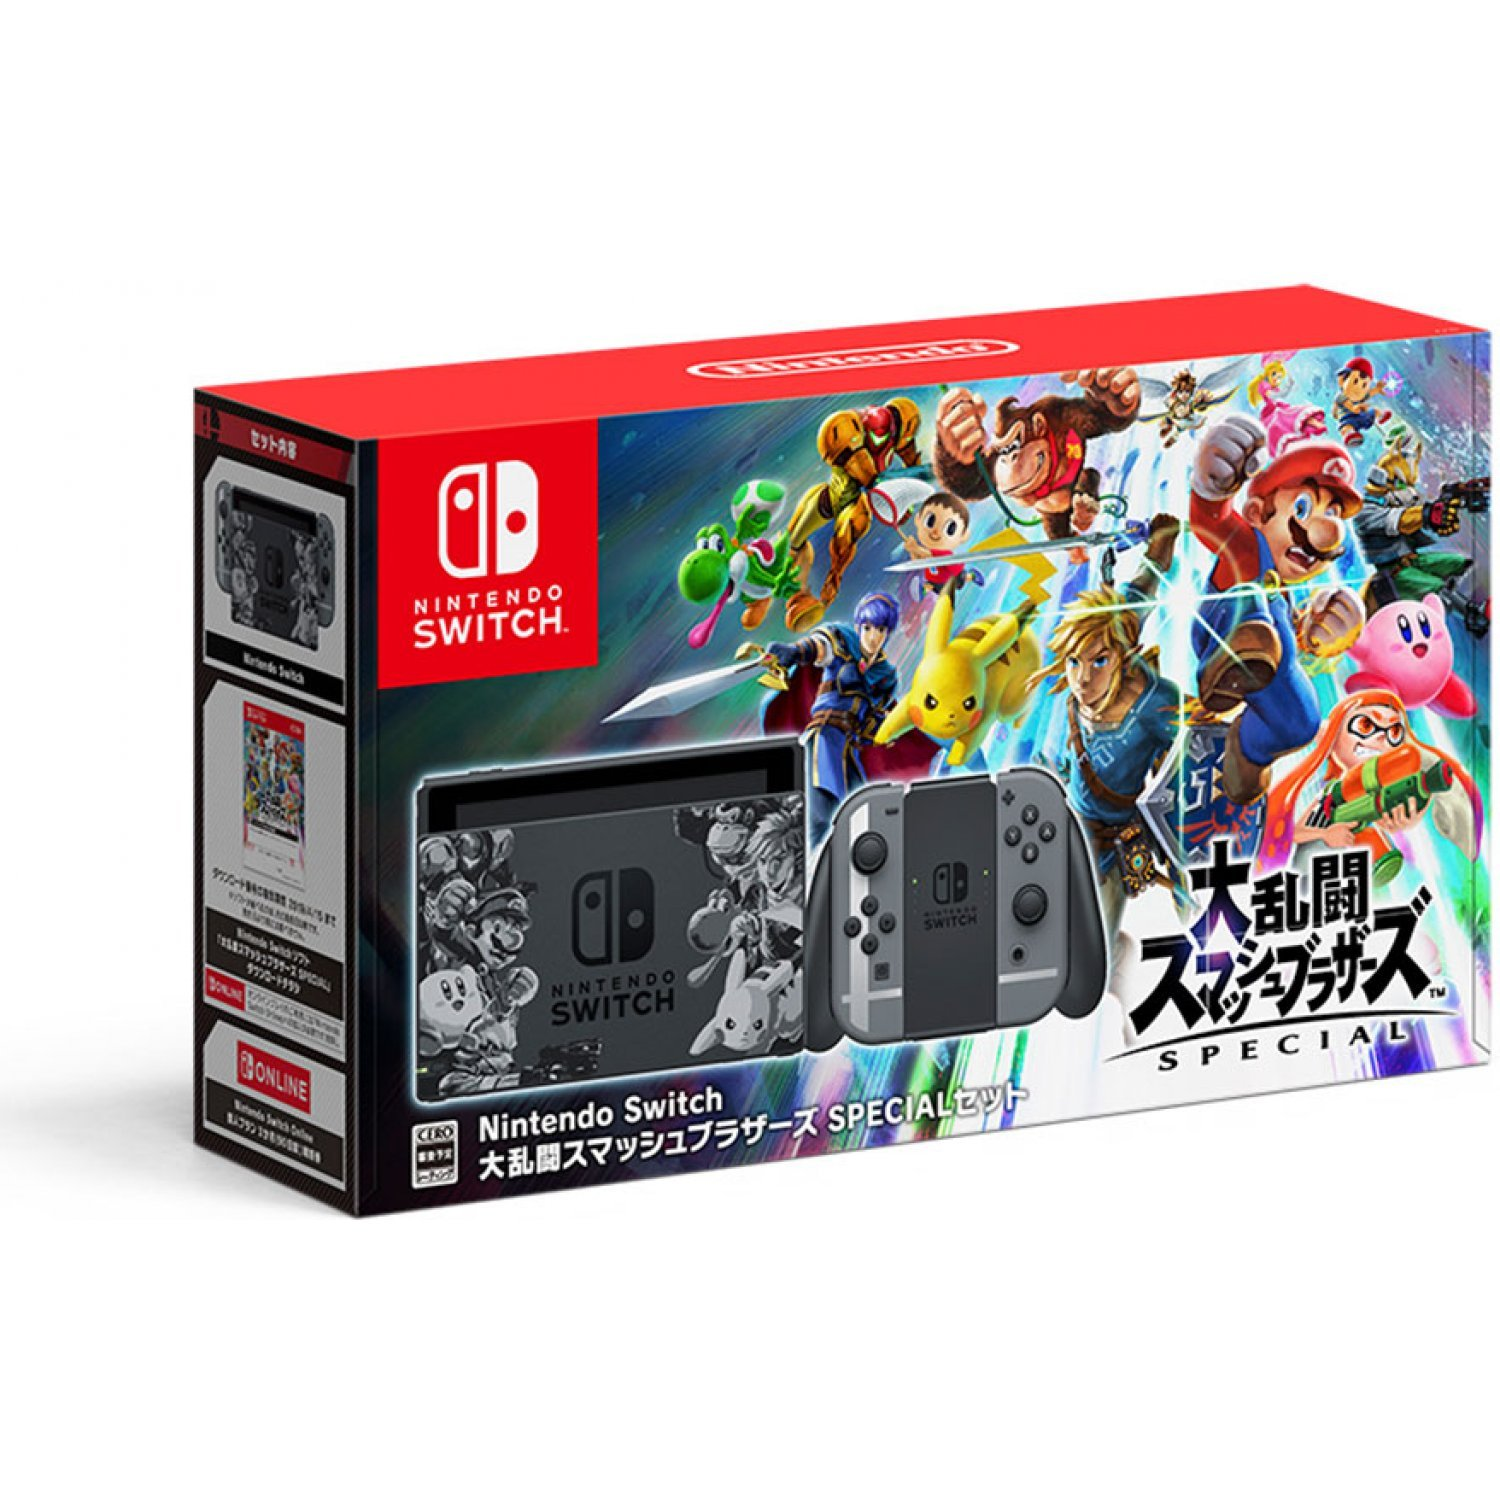 Nintendo Switch Super Smash Bros Ultimate Special Set Limited Edition